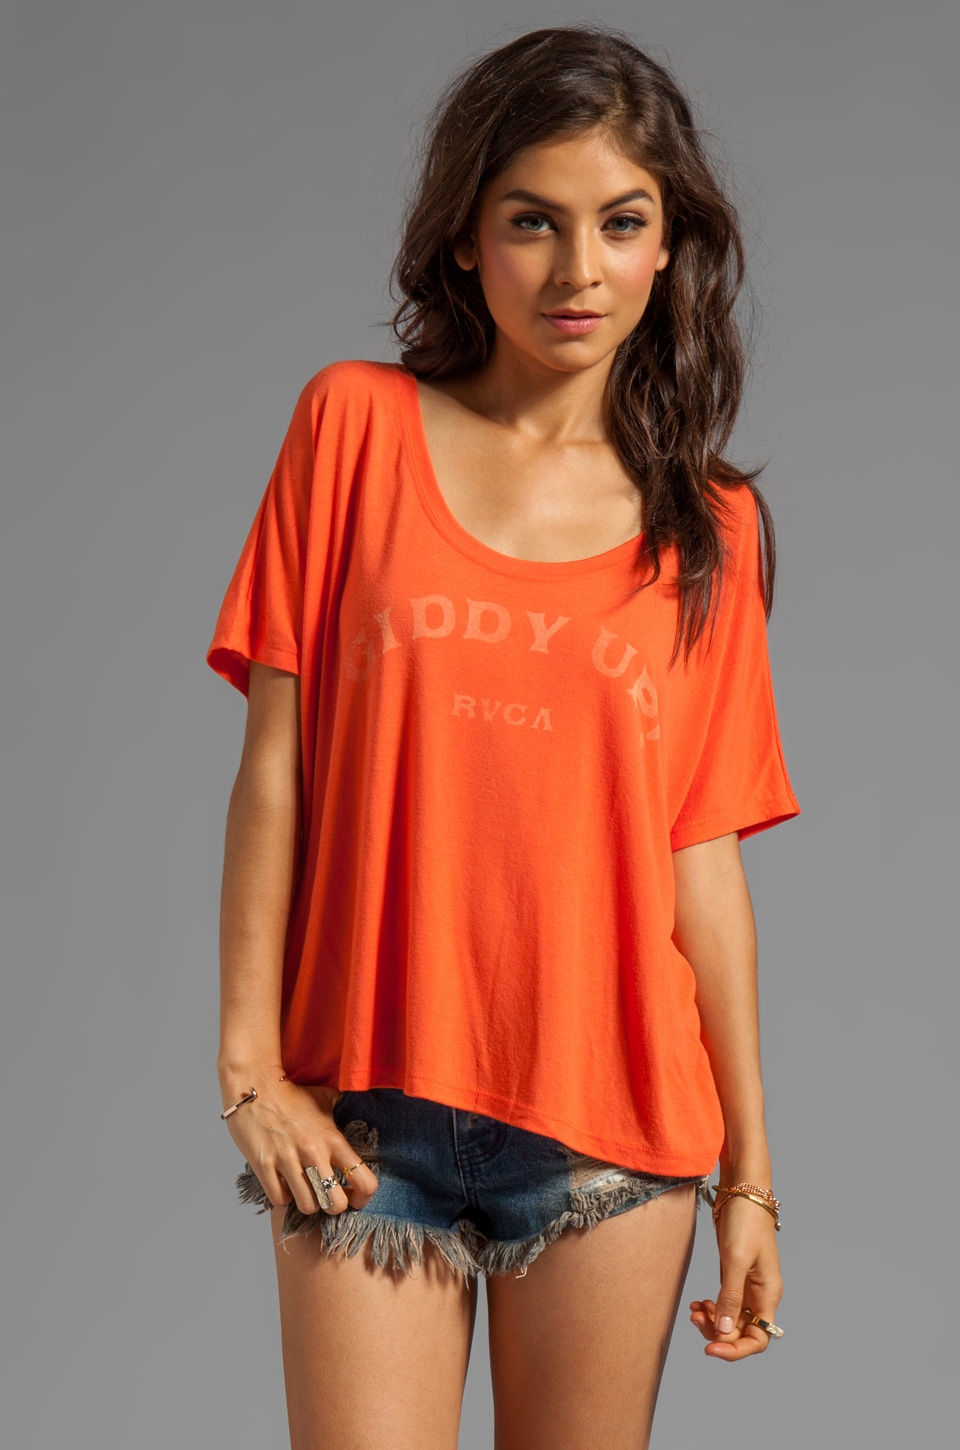 RVCA Giddy Up S/S Graphic Tee in Blood Orange